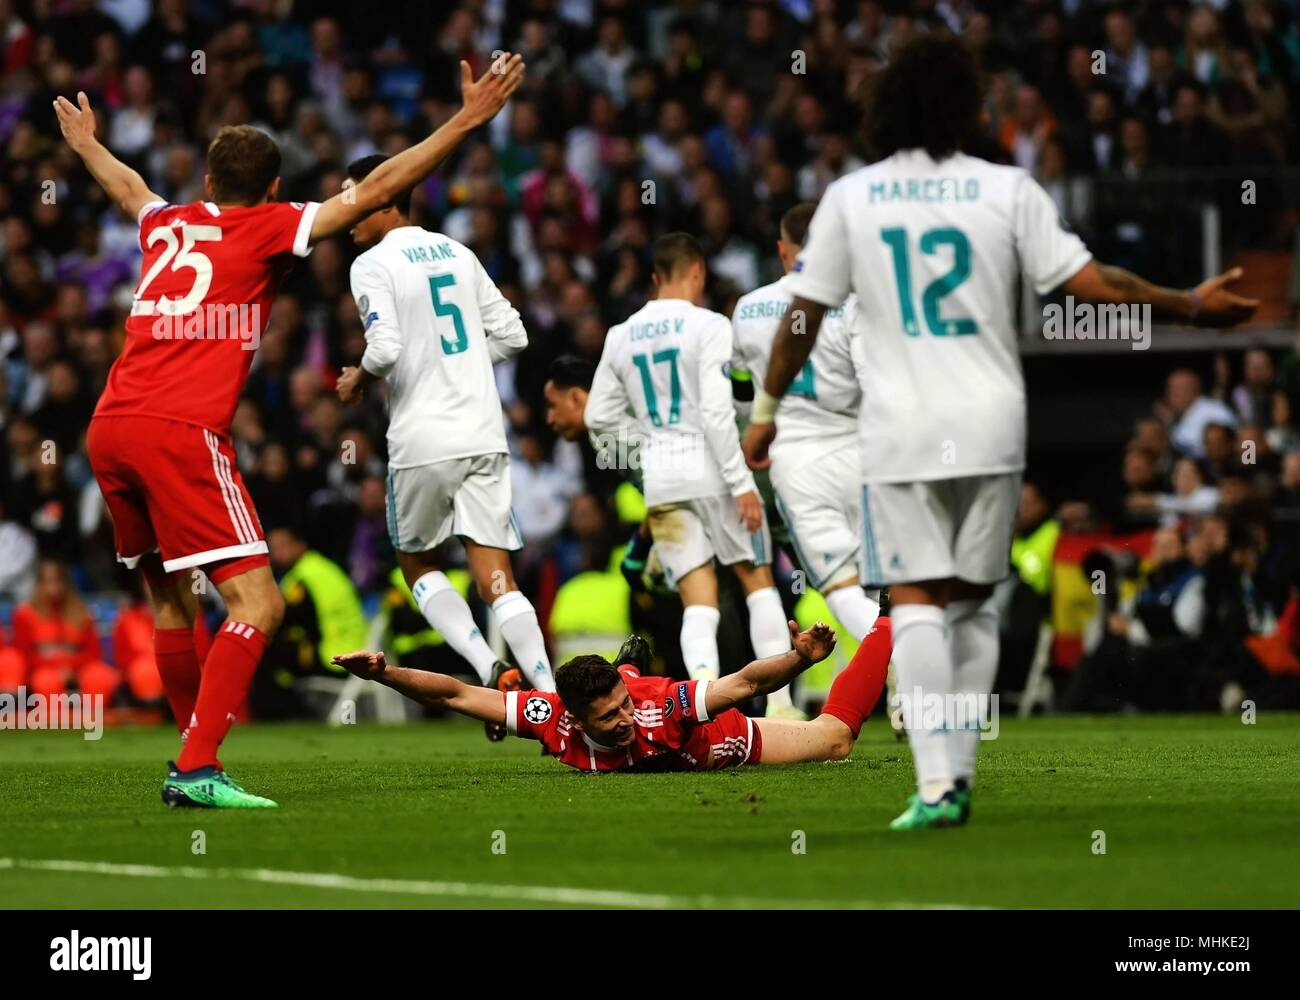 Madrid, Spain. 1st May, 2018. Bayern Munchen's Robert Lewandowski (C) falls on the ground during a UEFA Champions League semifinal second leg soccer match between?Spanish team Real Madrid and German team Bayern Munchen in Madrid, Spain, on May 1, 2018. The match ended 2-2. Real Madrid advanced to the final with 4-3 on aggregate. Credit: Guo Qiuda/Xinhua/Alamy Live News - Stock Image